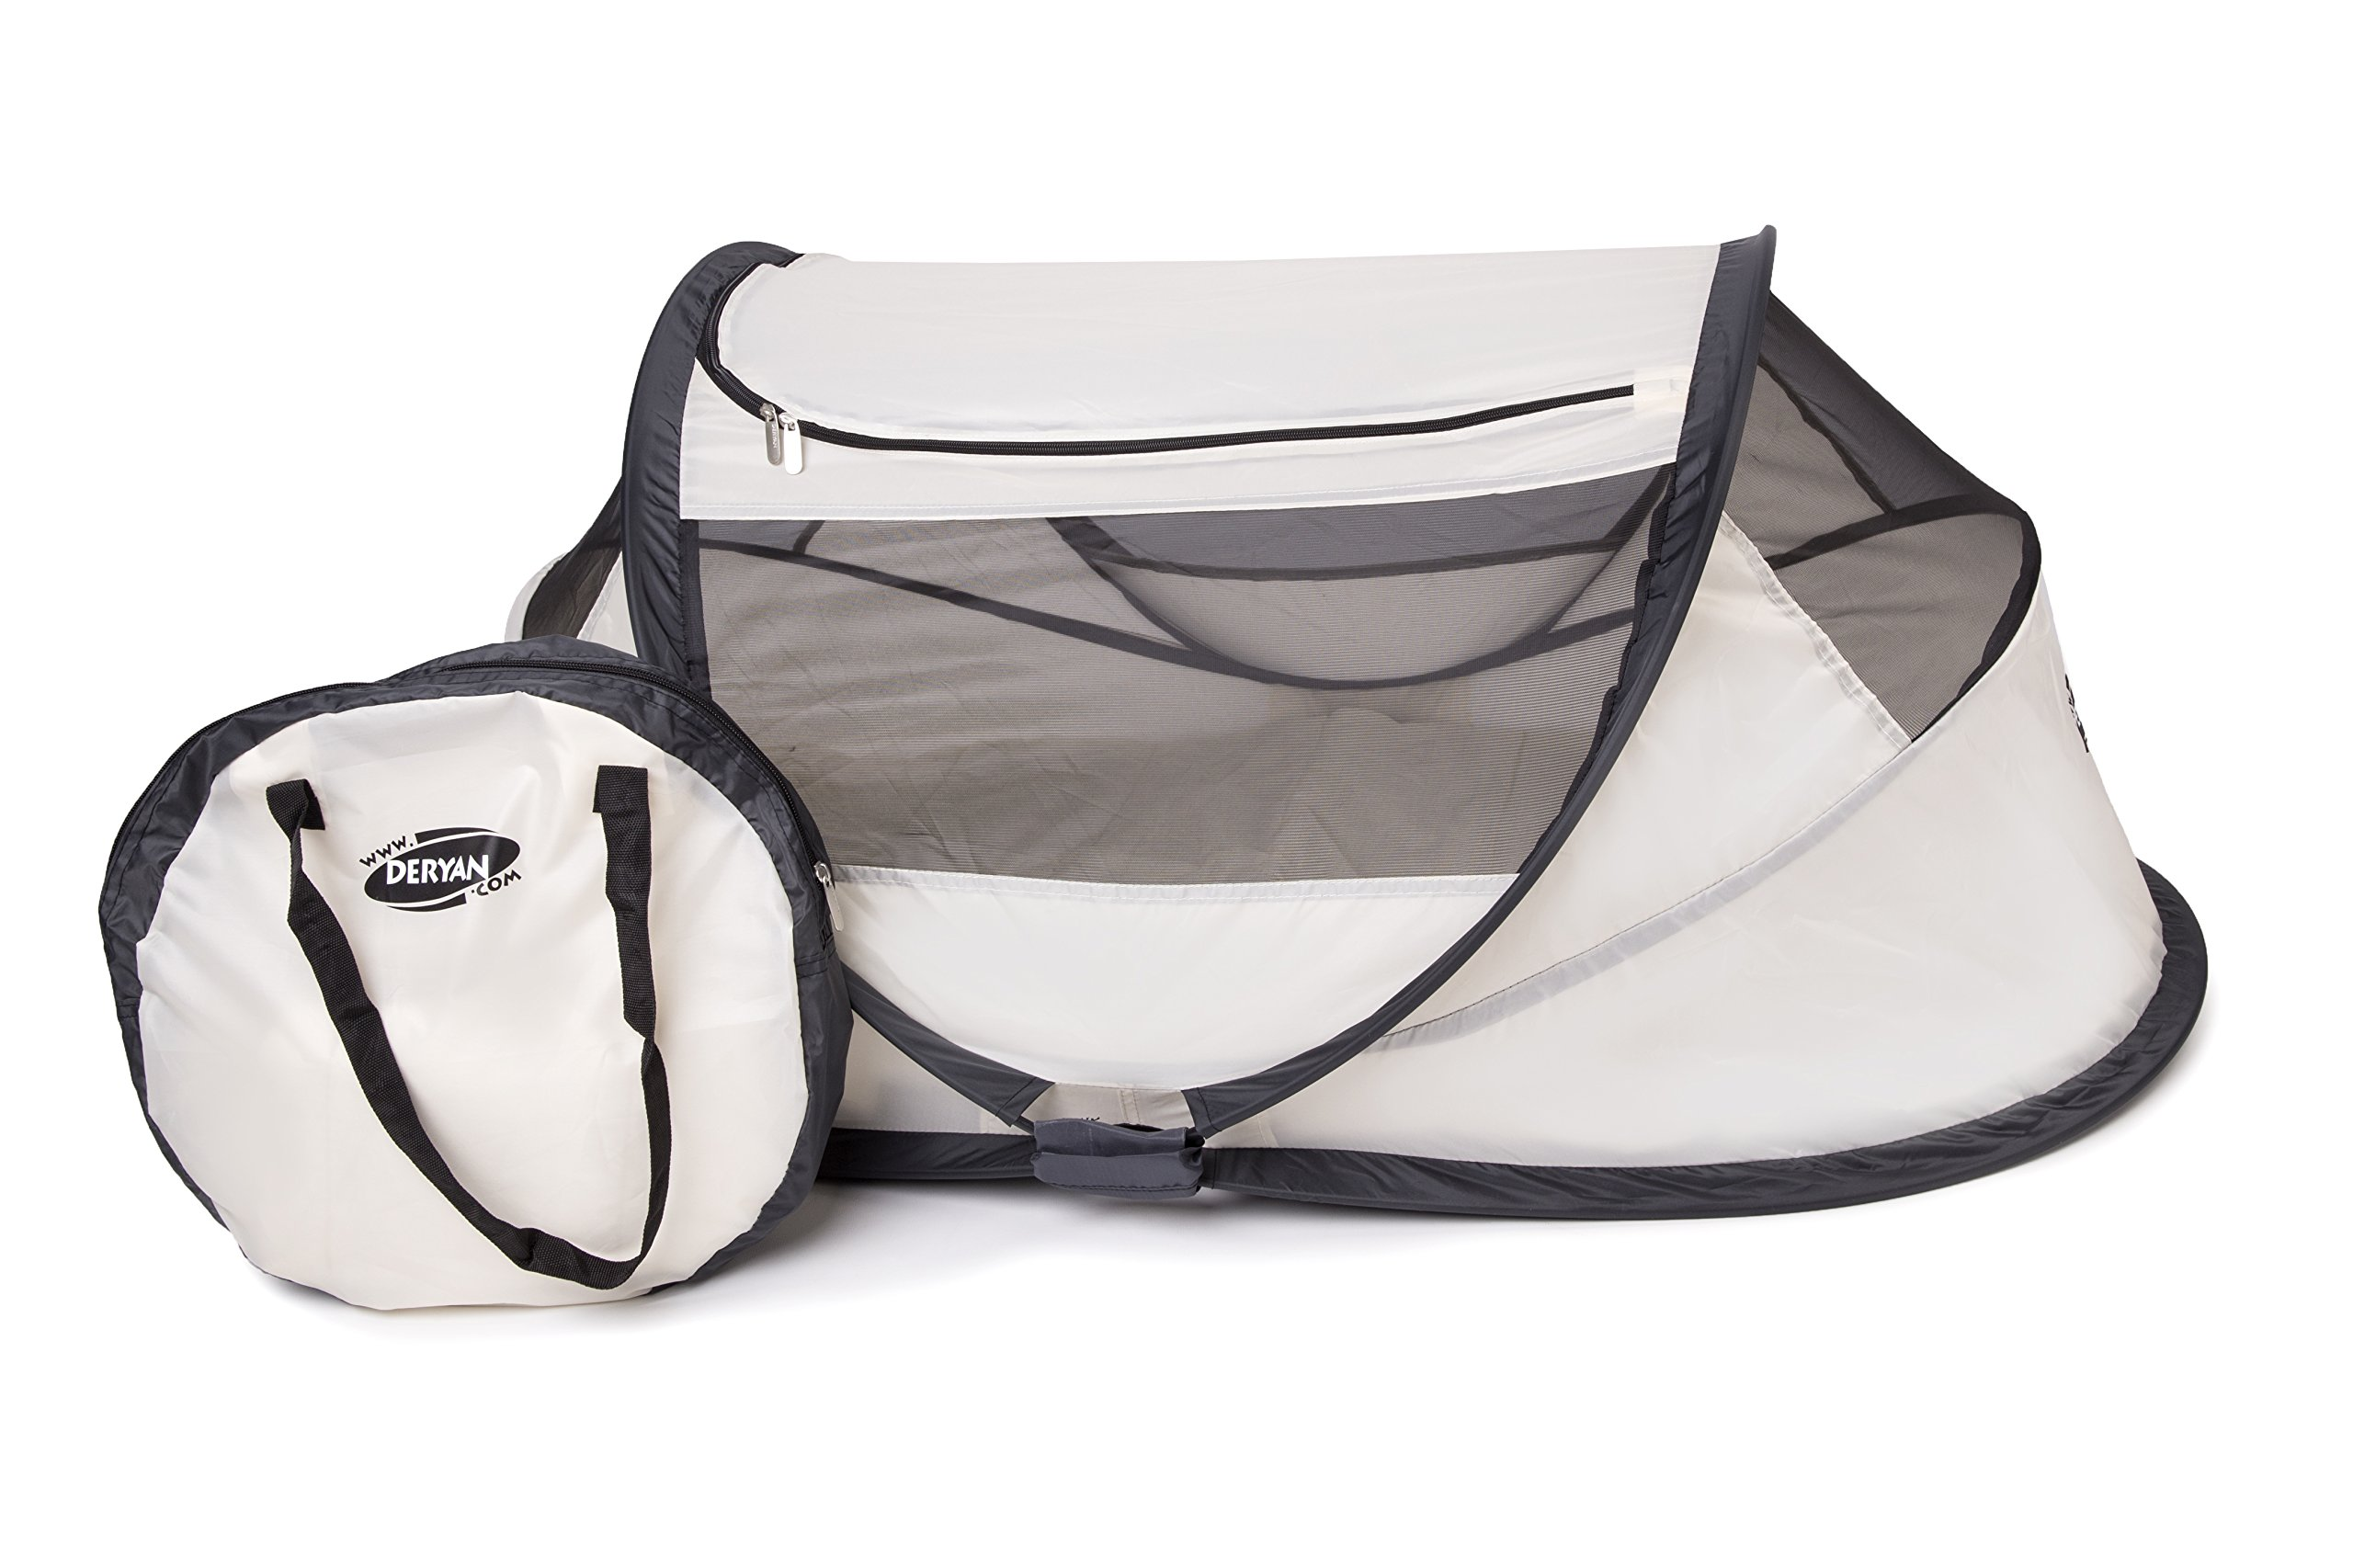 Travel Cot Babybox (Khaki) Deryan 50% UV Protection and flame retardant fabric Setup in 2 seconds and a anti-musquito net  4